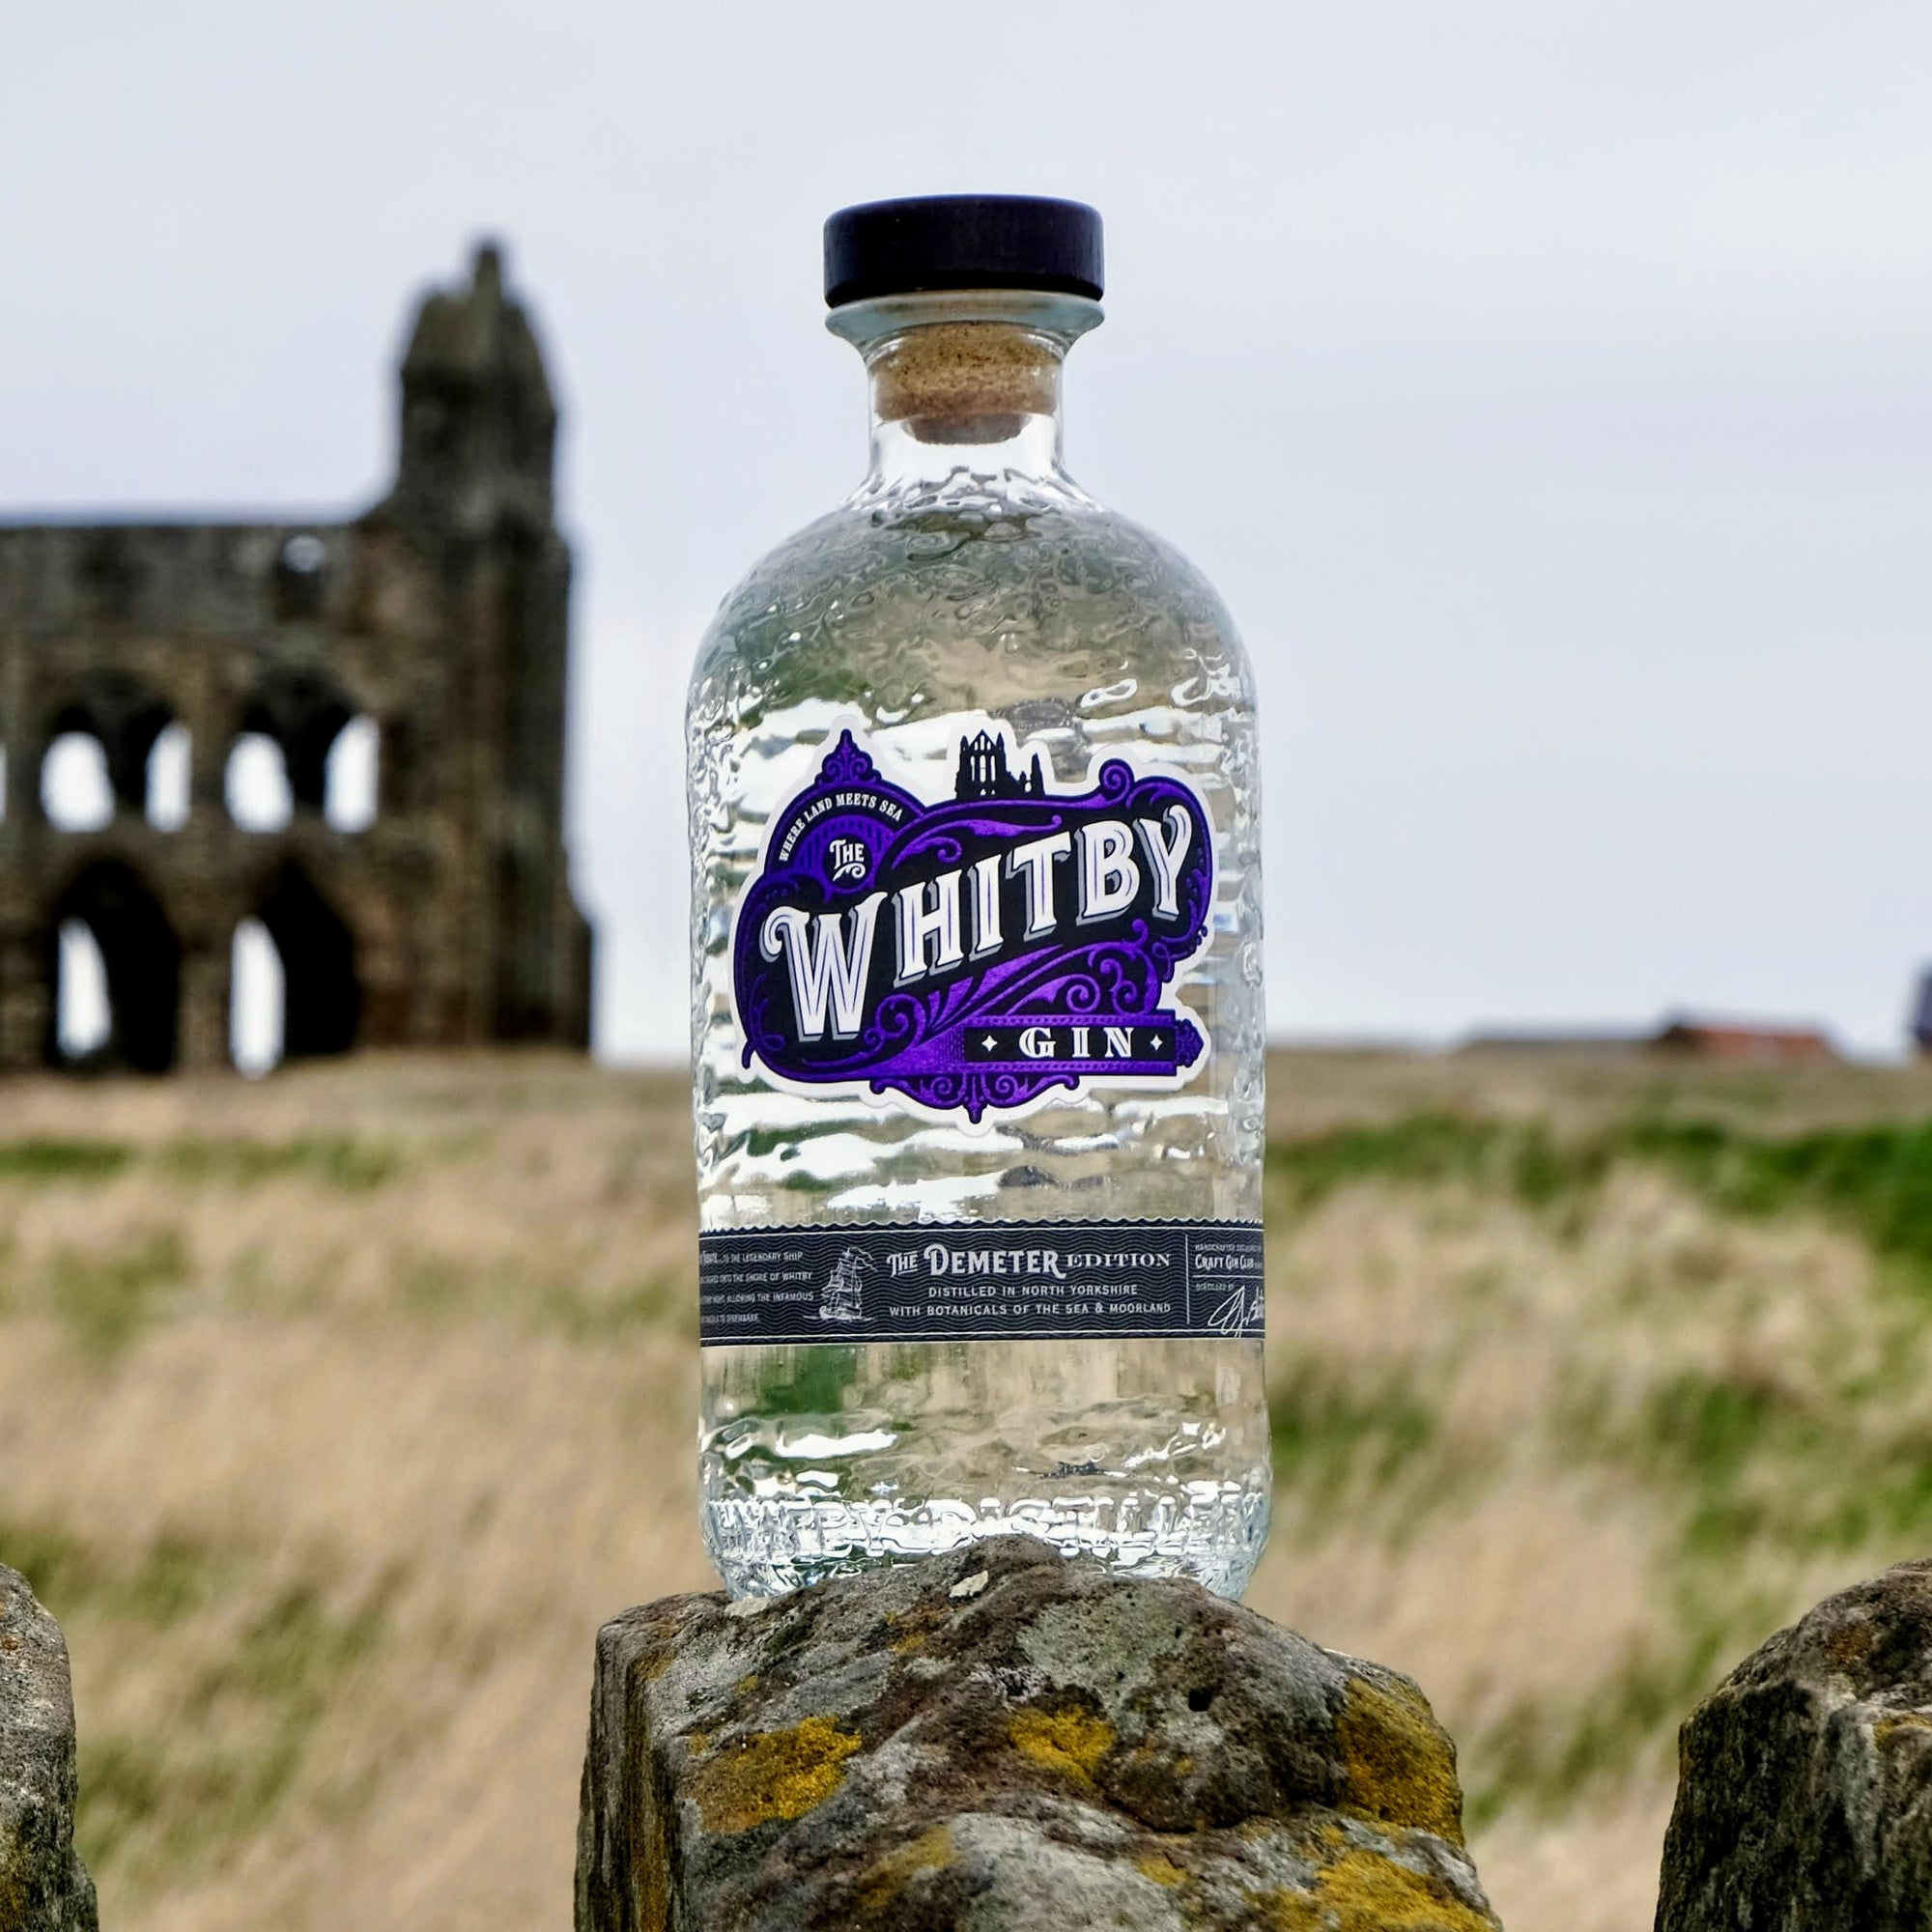 Whitby Gin - The Demeter Edition